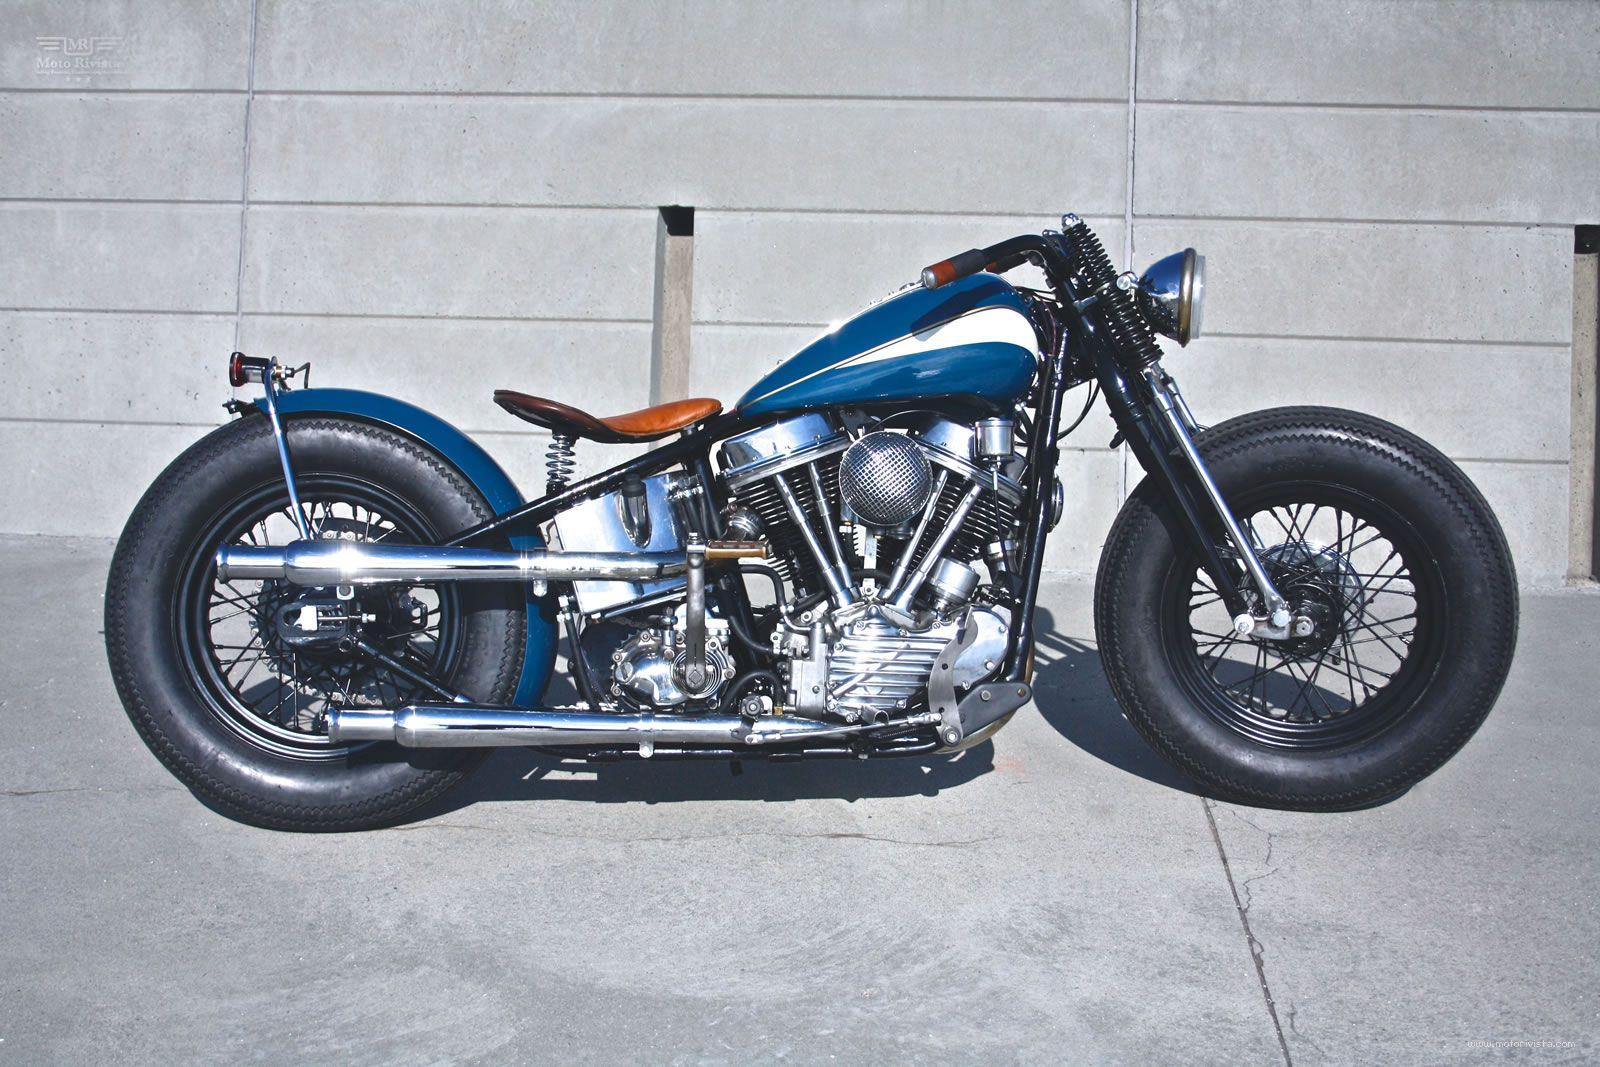 hight resolution of james from customs from jamesville has done it again this time he has created a bold and beautiful 48 custom panhead about a year ago i